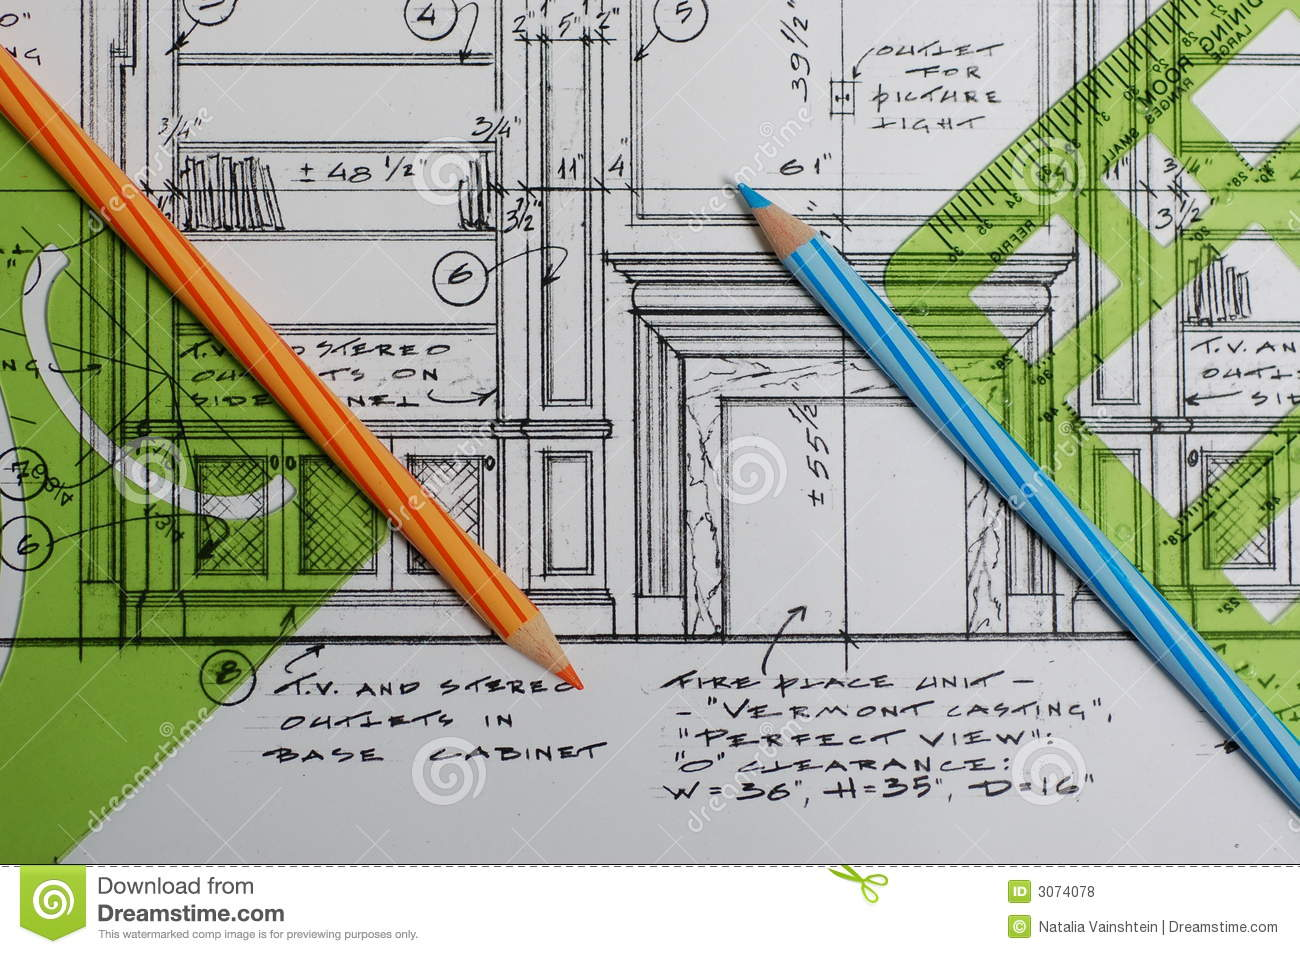 royalty free stock photo download interior design drawings - Interior Design Drawings